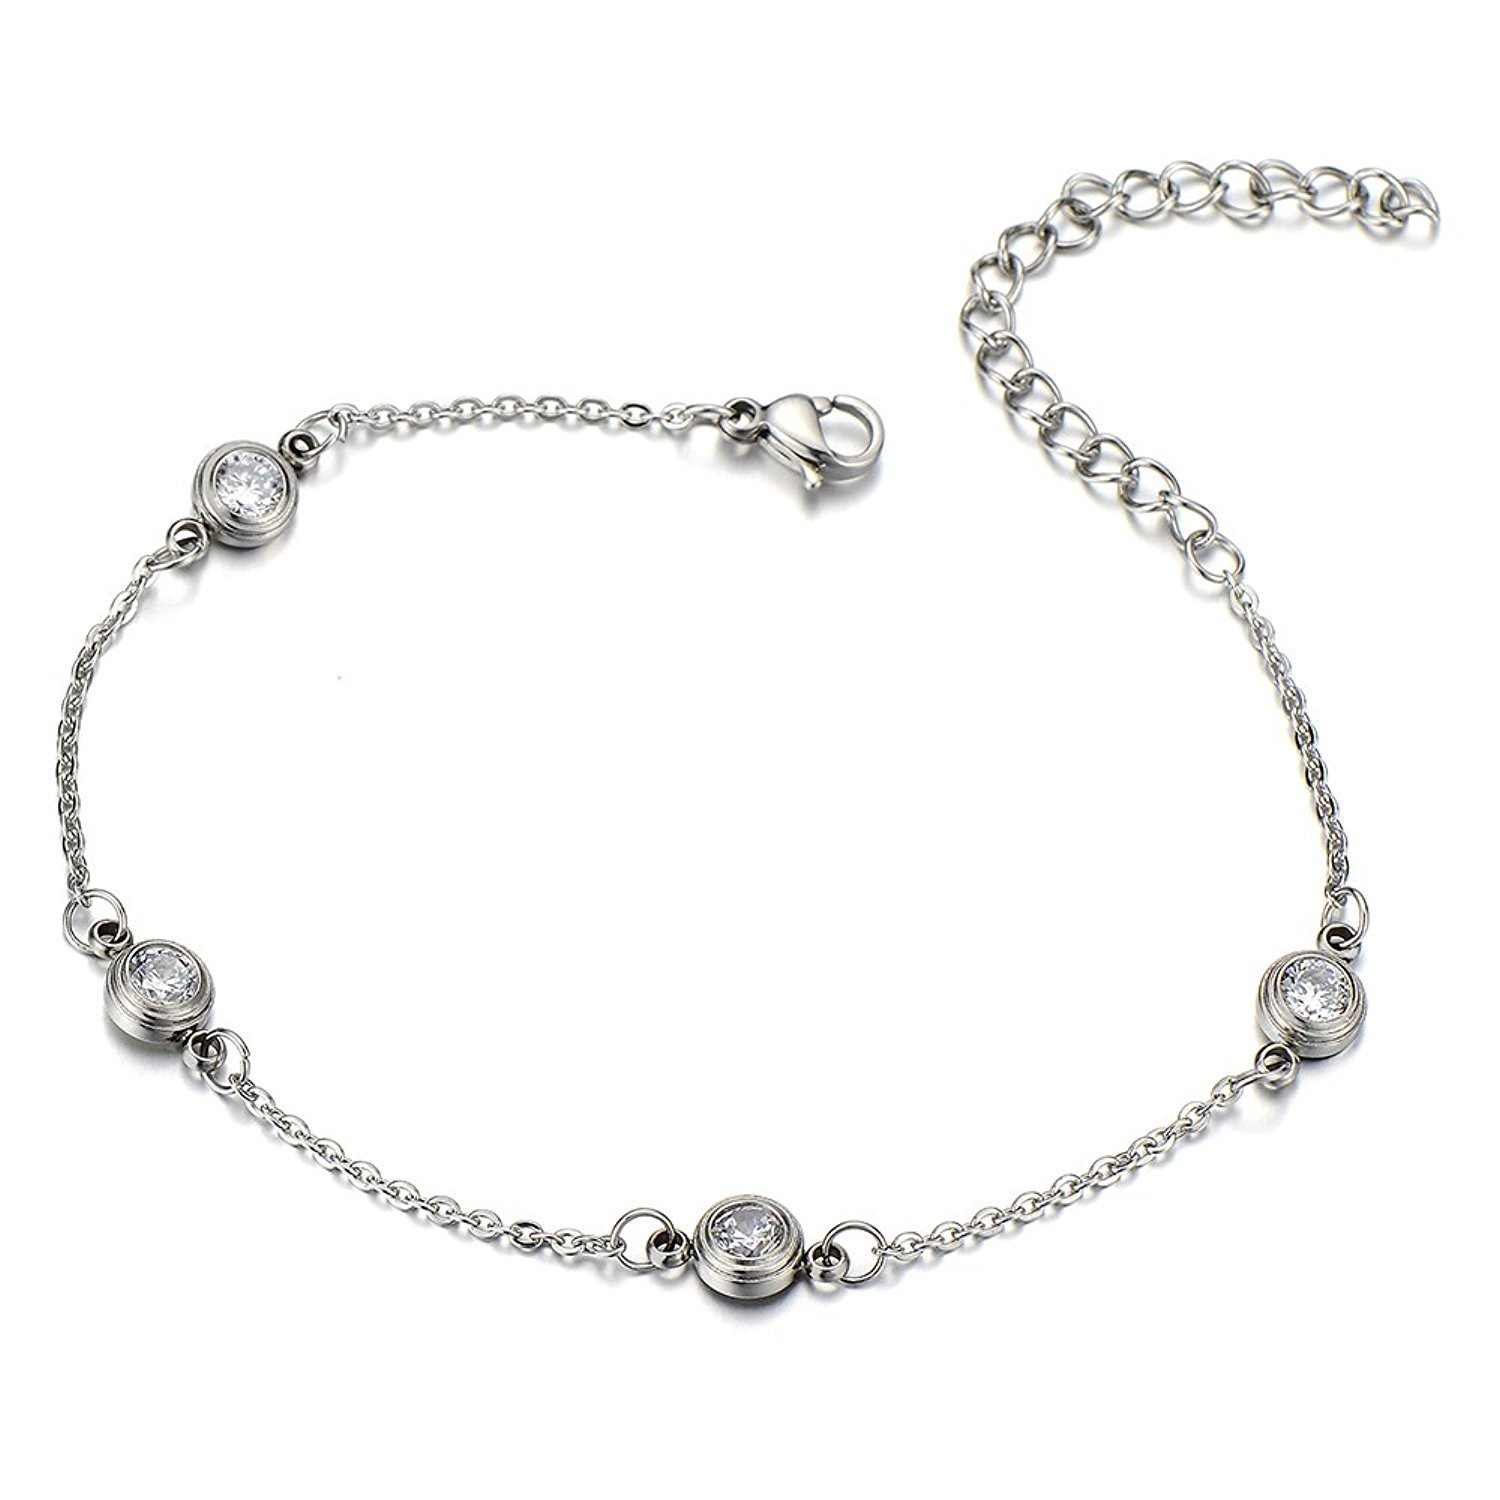 COOLSTEELANDBEYOND Stainless Steel Anklet Bracelet with Cubic Zirconia